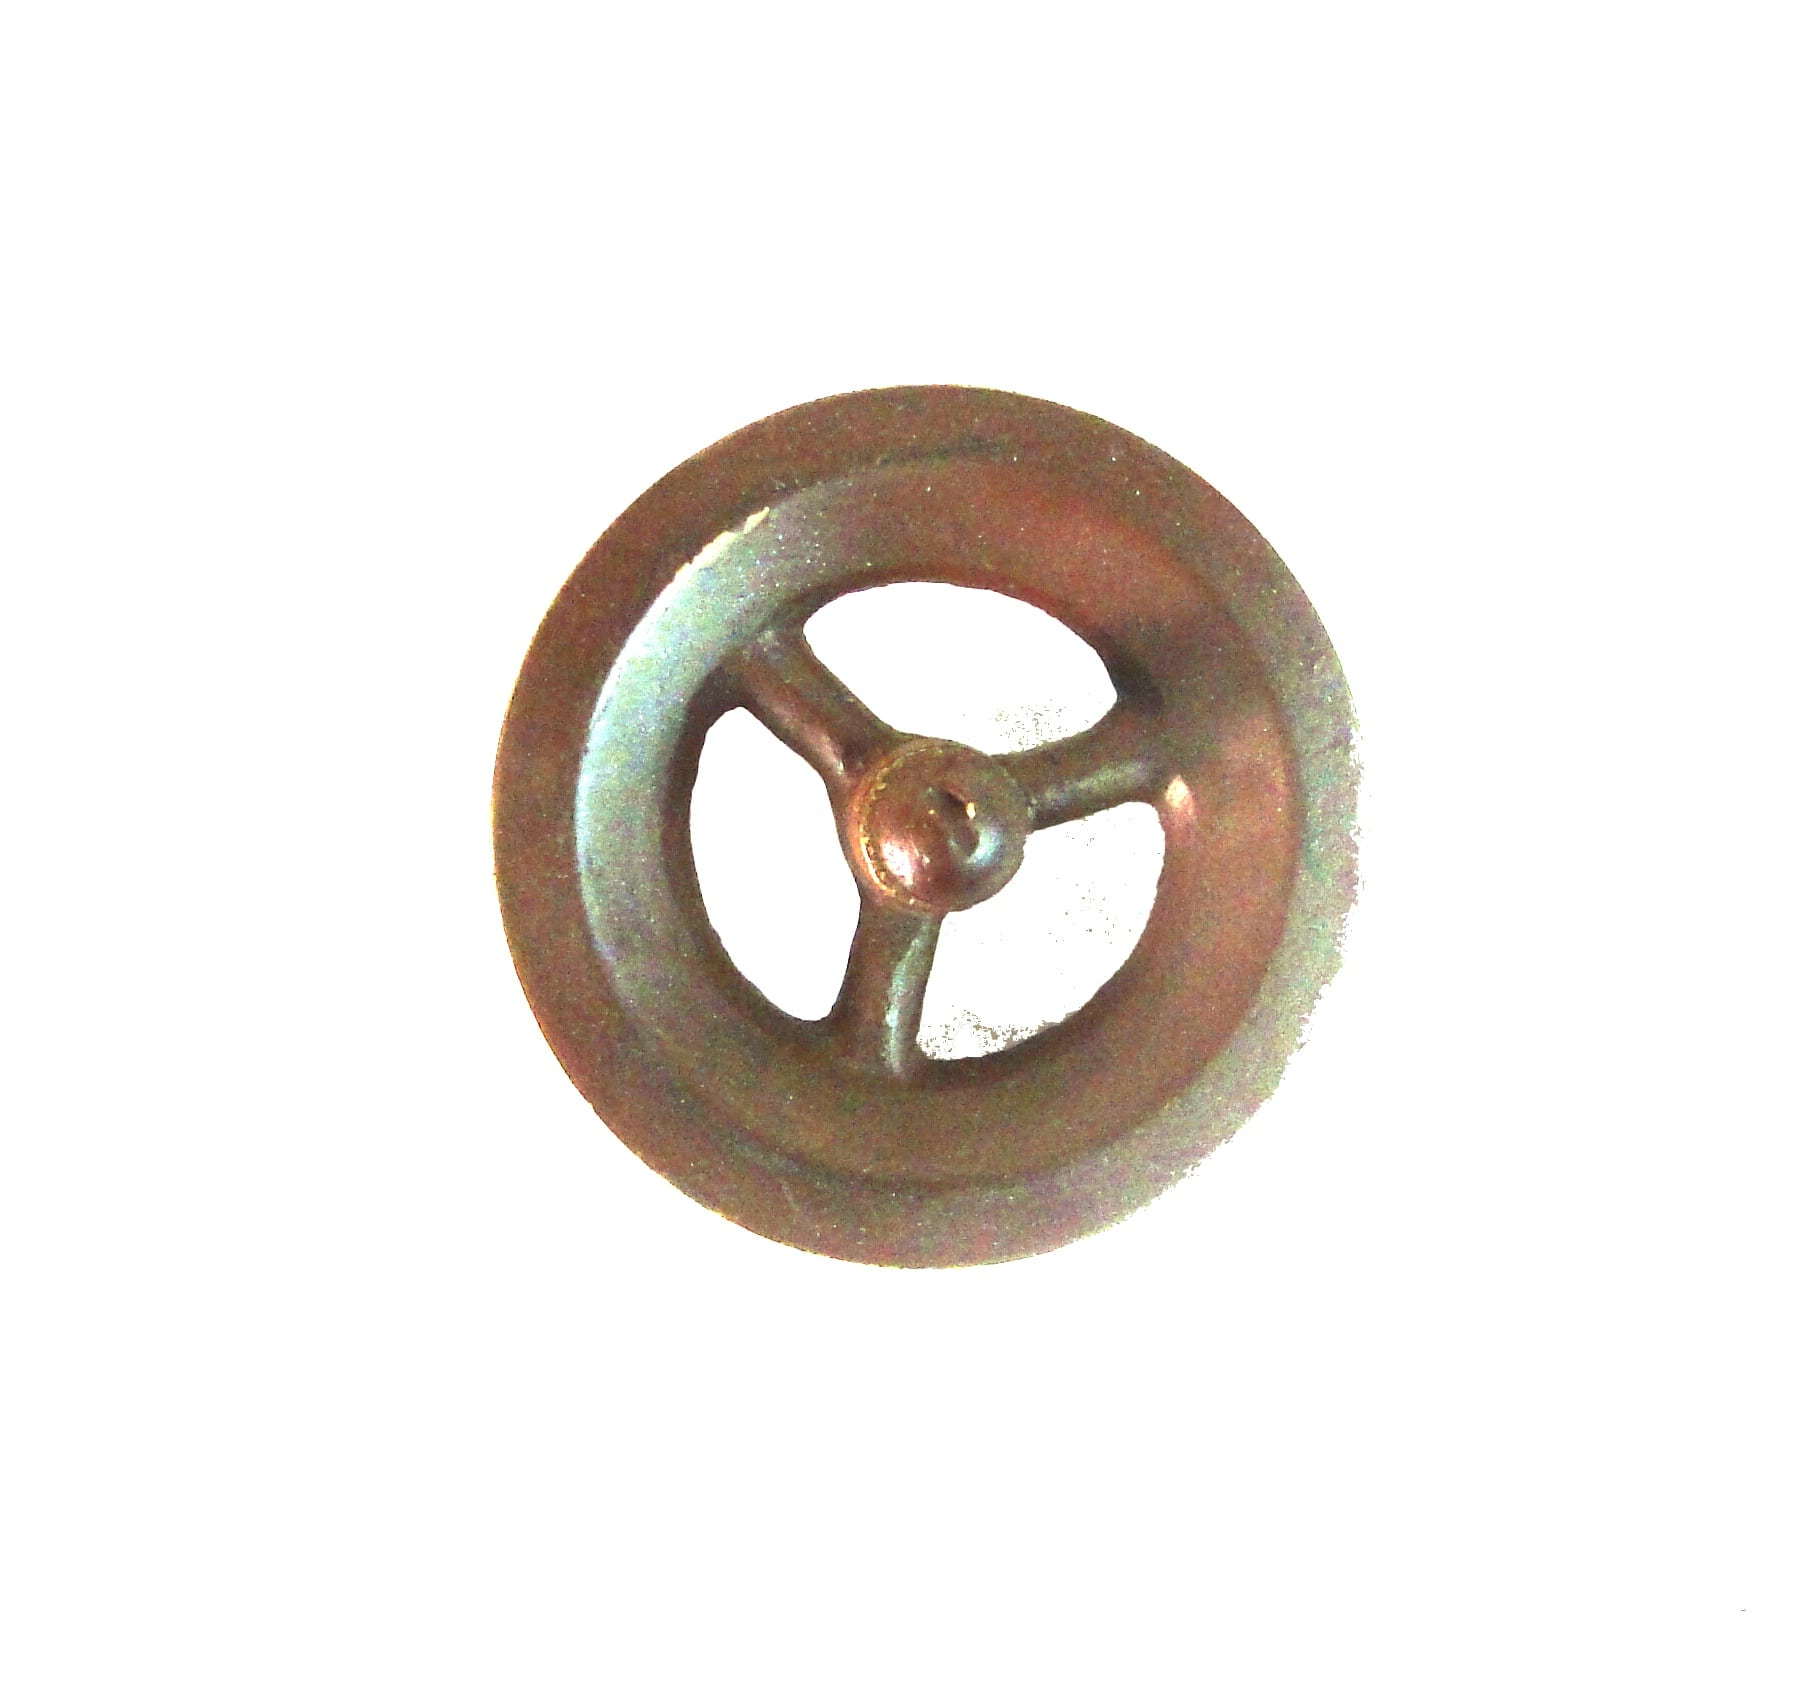 Small bronze pulleys pair of painted solid brass for lamp parts small bronze pulleys pair of painted solid brass for lamp parts crafts aloadofball Choice Image